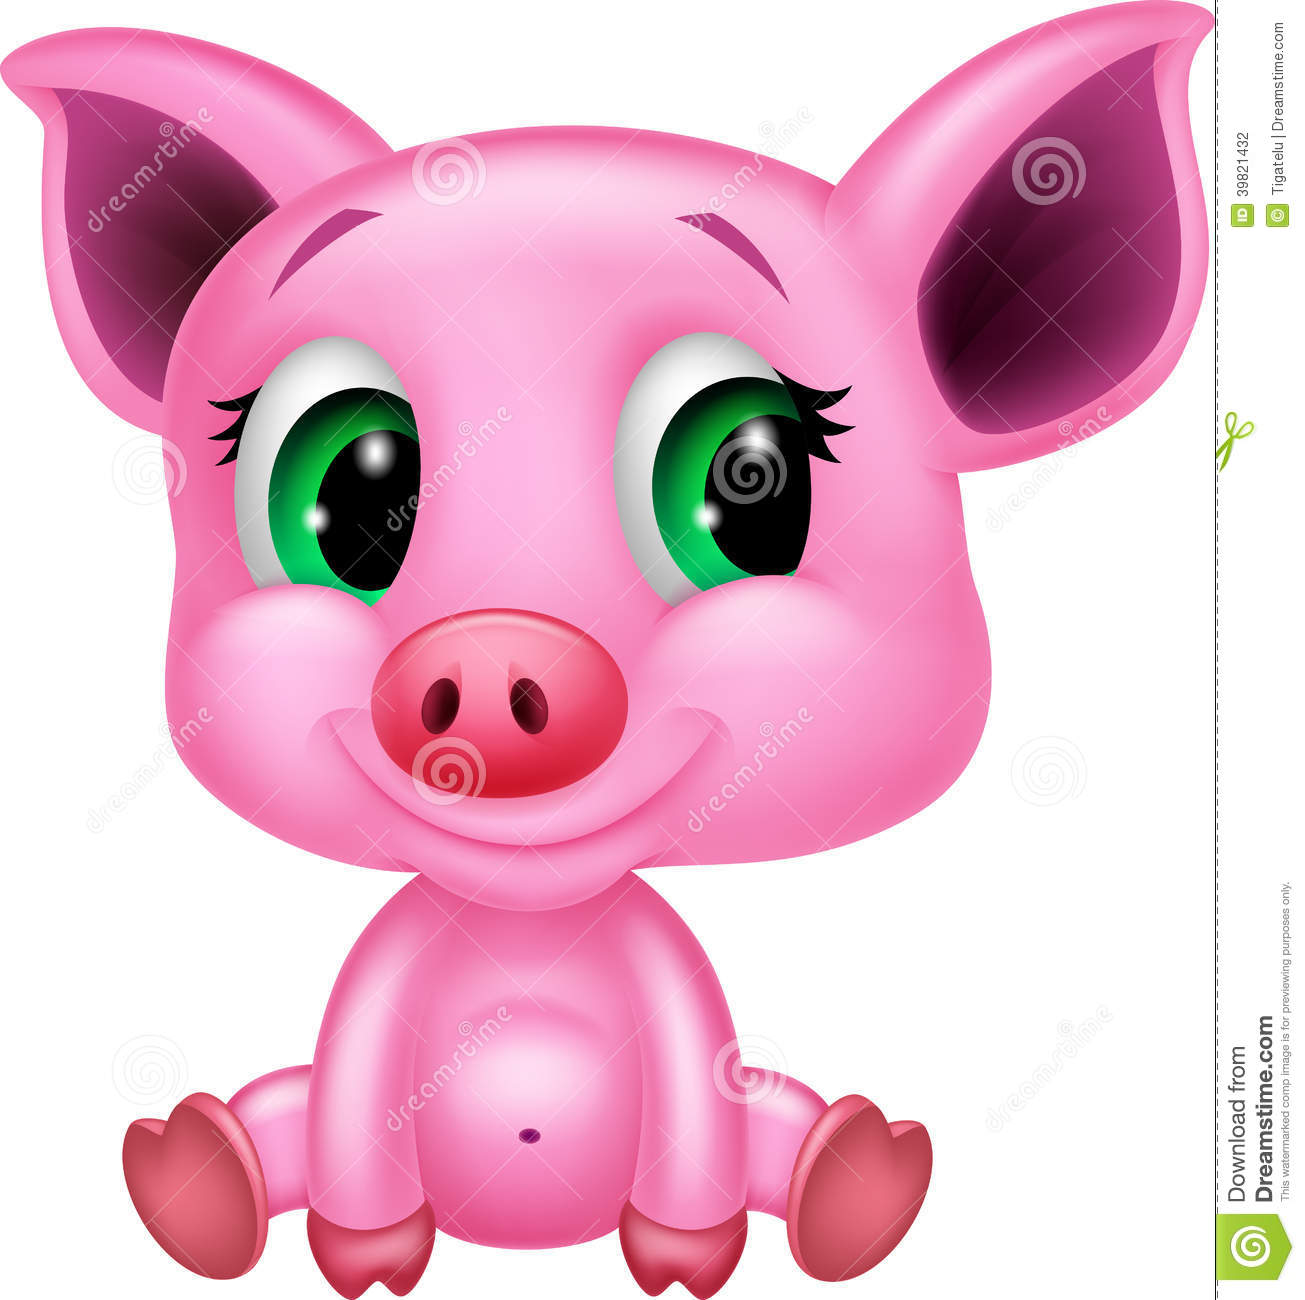 Cute baby pig cartoon stock vector. Illustration of ... Cute Cartoon Pigs With Big Eyes